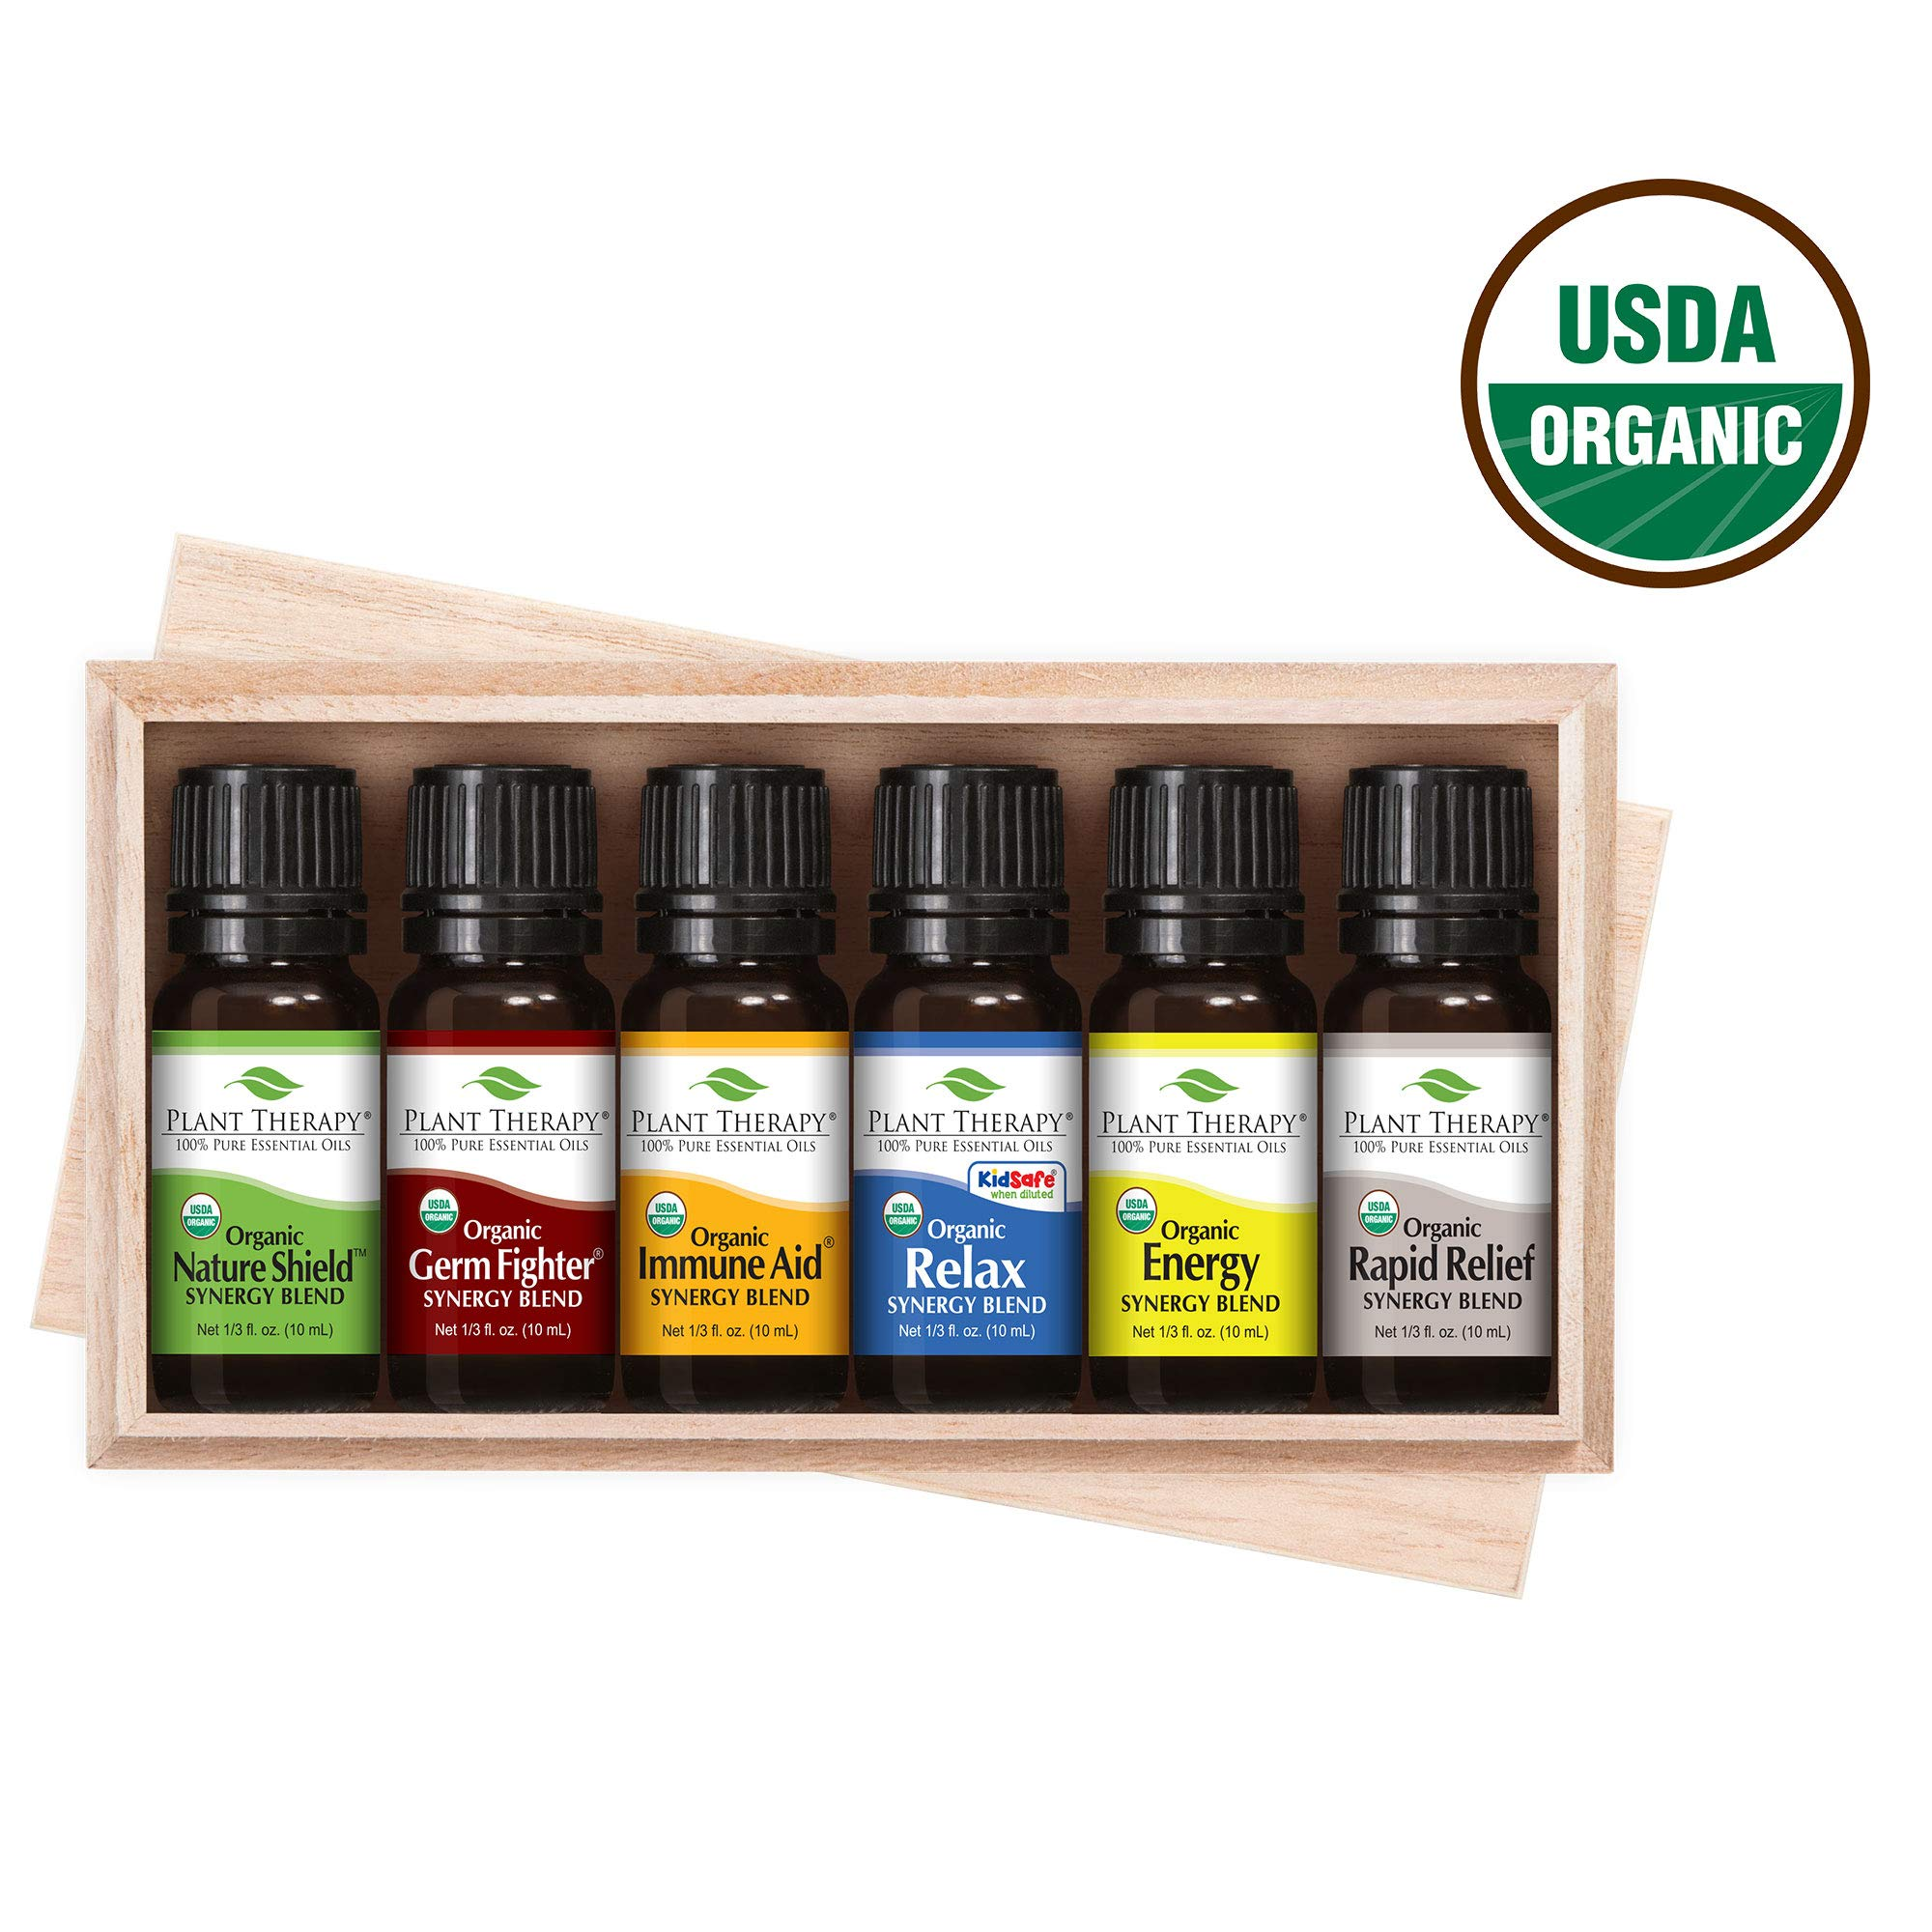 Plant Therapy Top 6 Organic Synergies Set | Essential Oil Blends for Sleep, Calm, Muscle Relief, Energy, Immunity, in A Wooden Box | 100% Pure, Undiluted, Natural, Therapeutic Grade | 10 mL (⅓ oz) by Plant Therapy